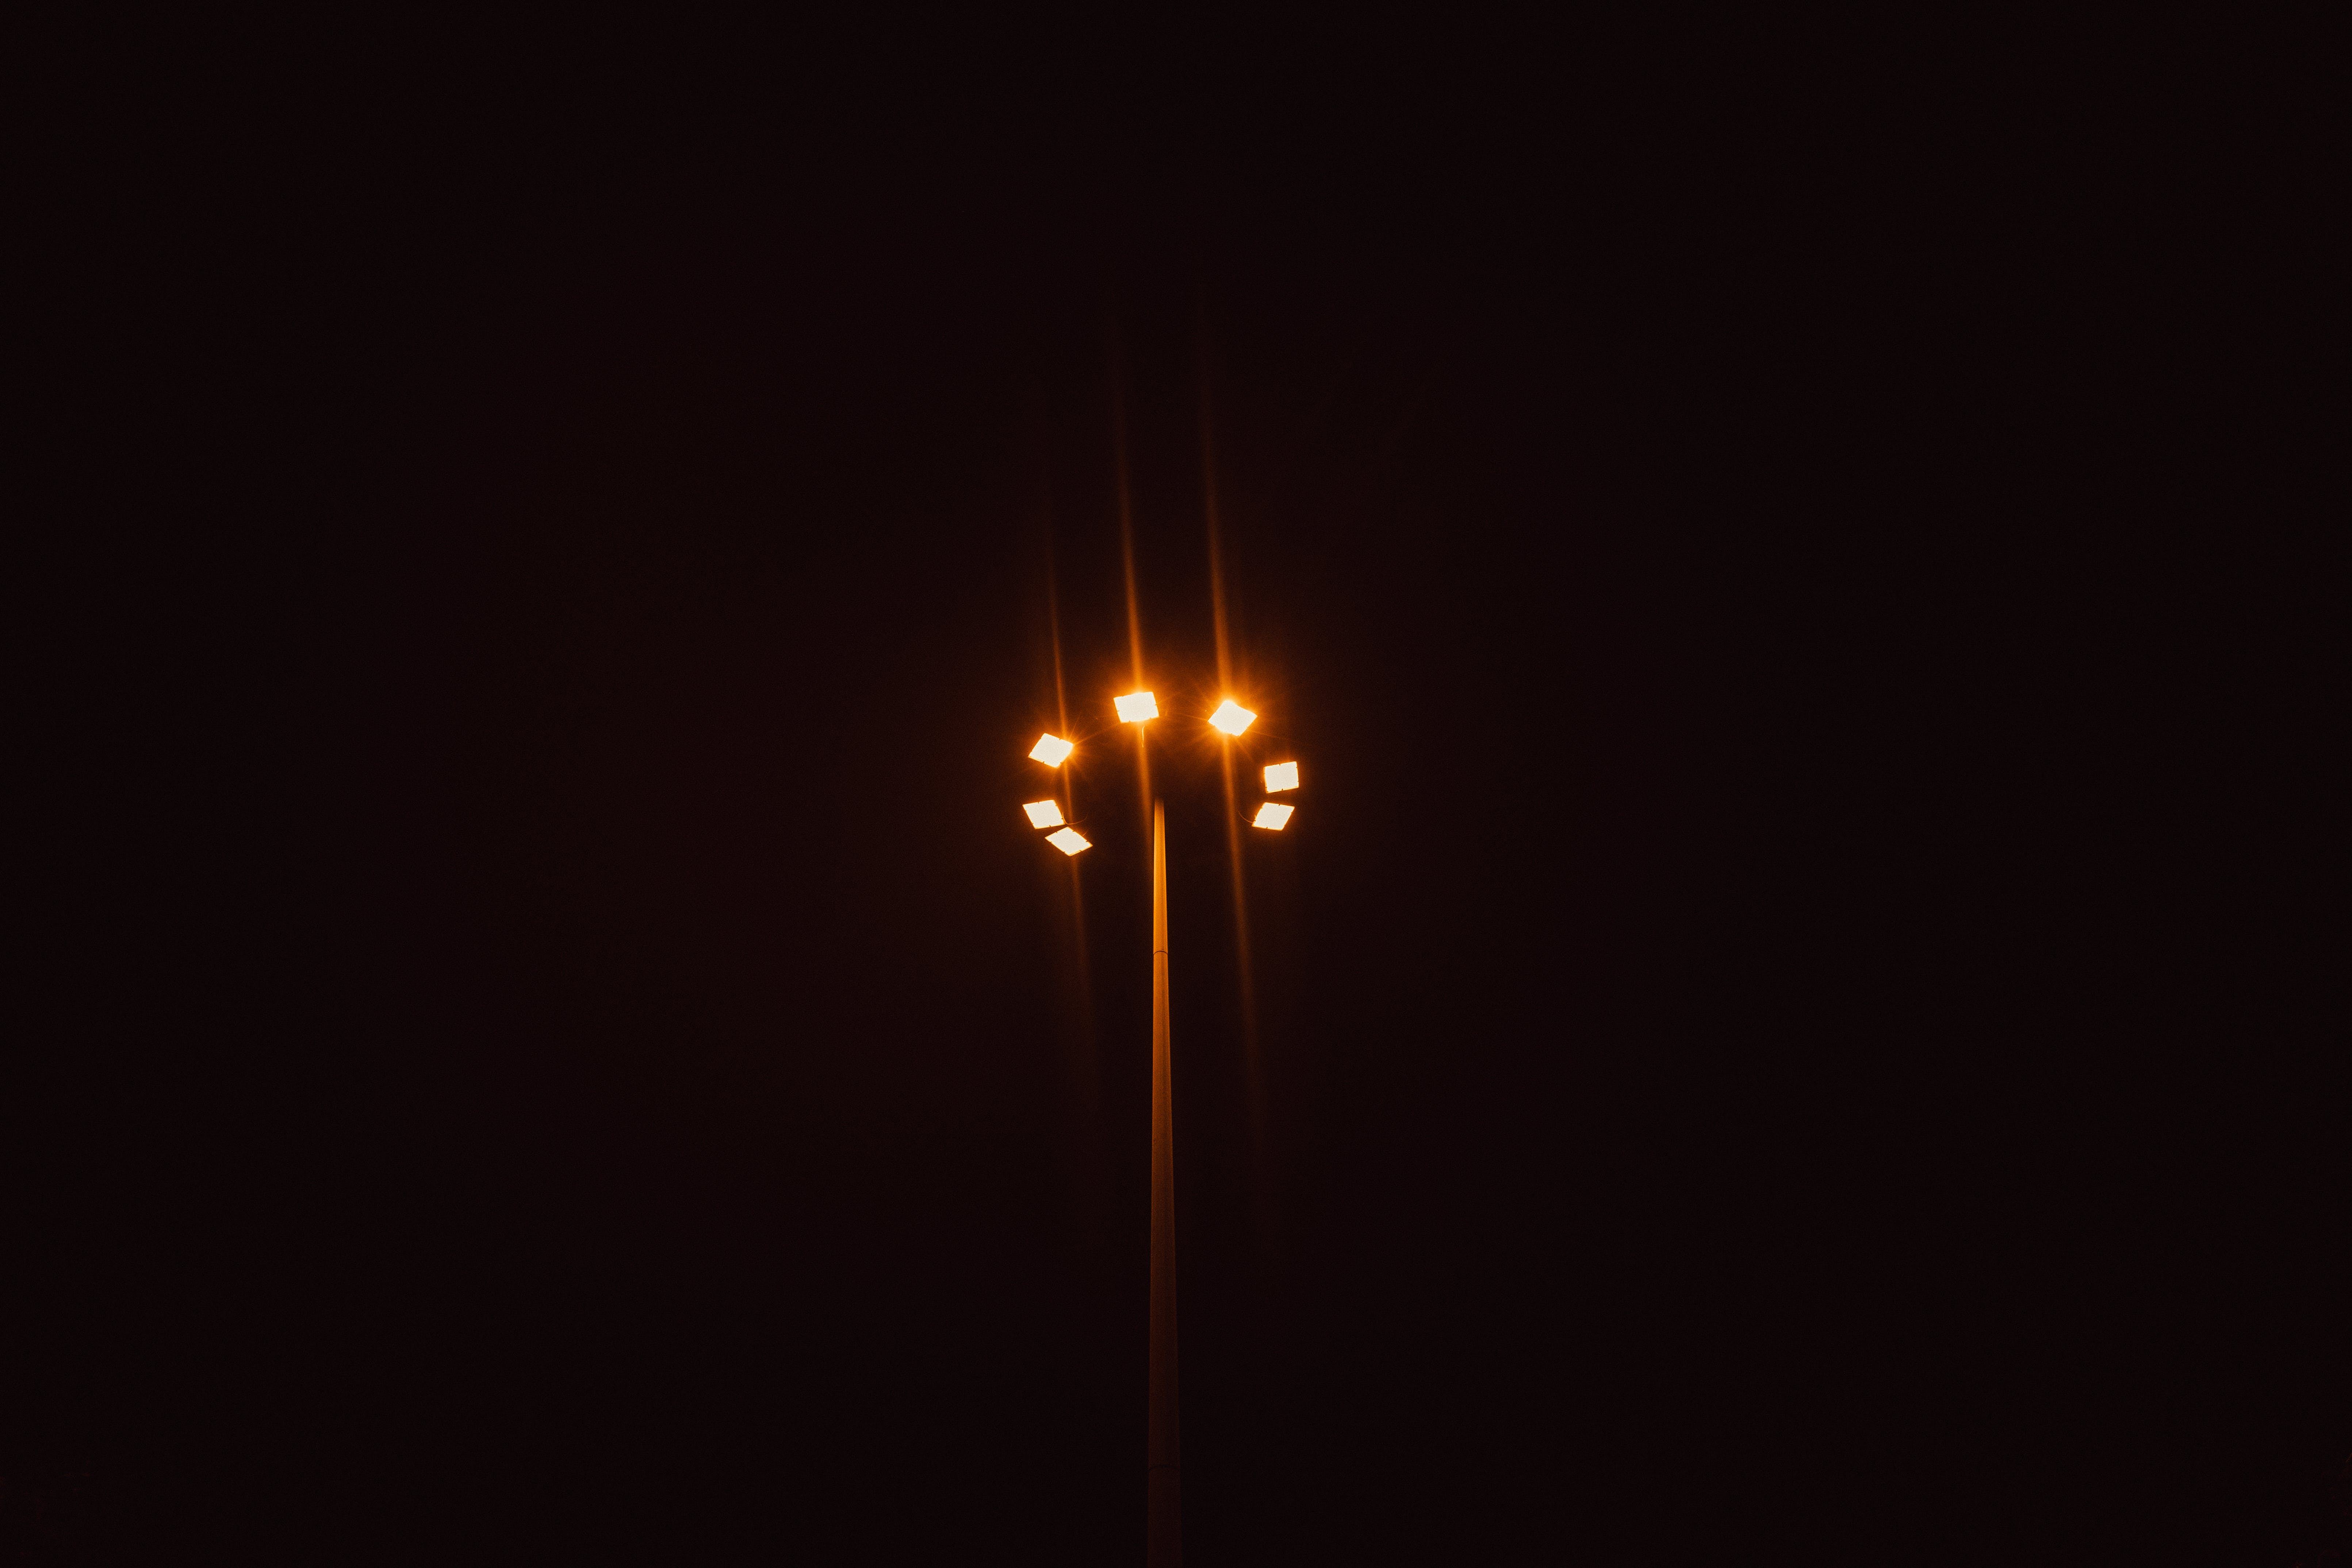 Free stock photo of light, night, dark, lamps